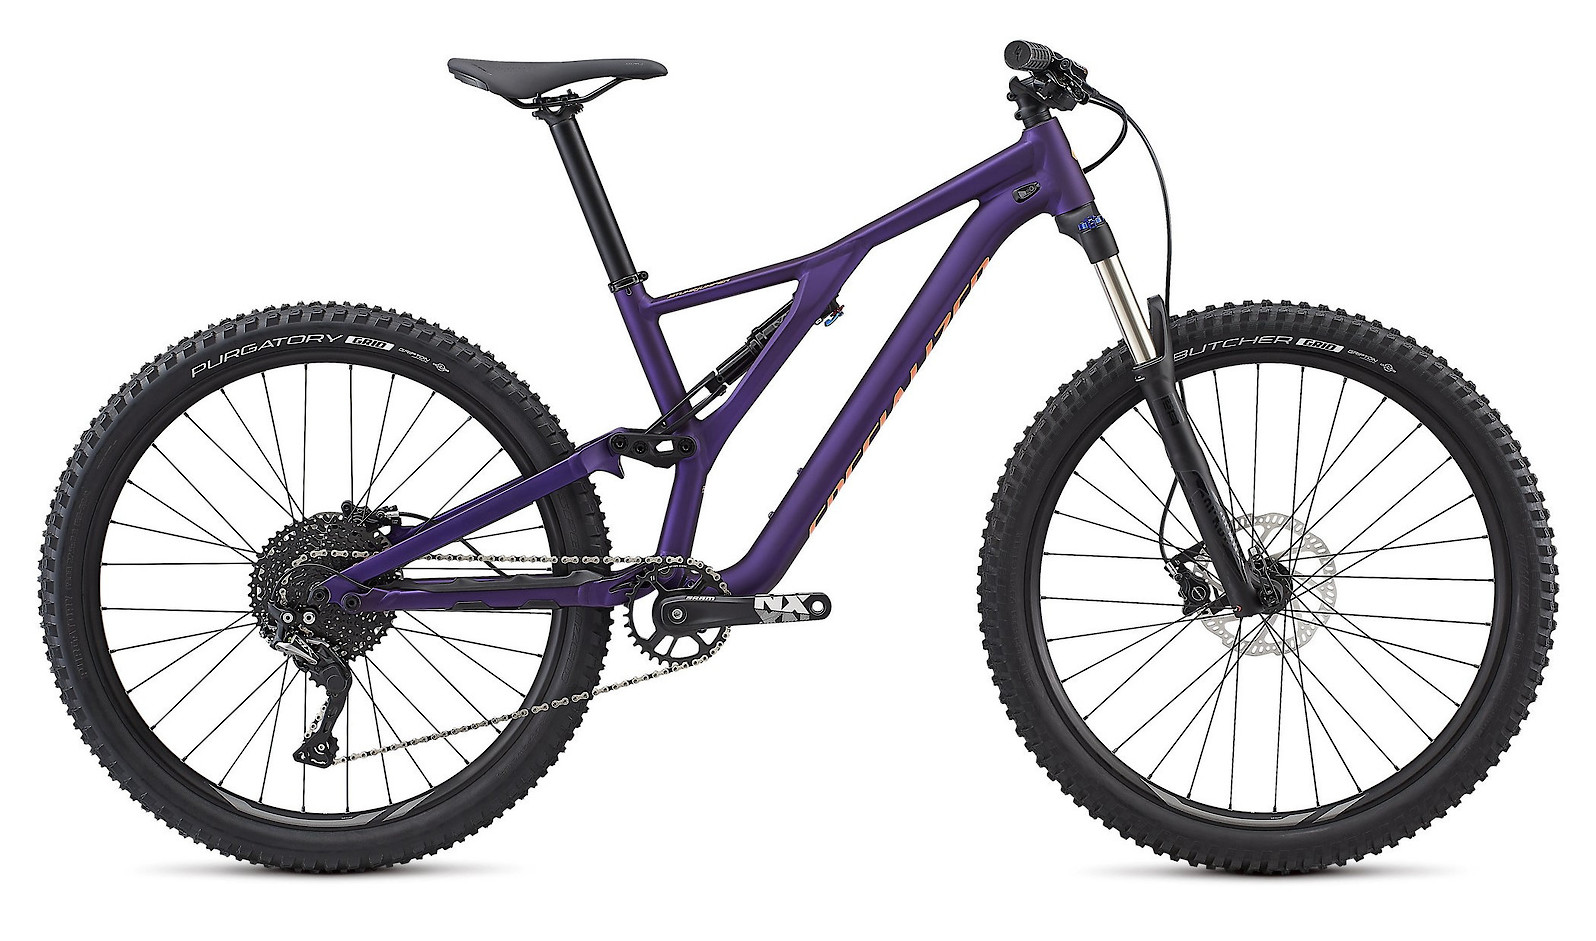 7a369b7da58 2018 Specialized Stumpjumper Women's ST Alloy 27.5 Bike - Reviews ...